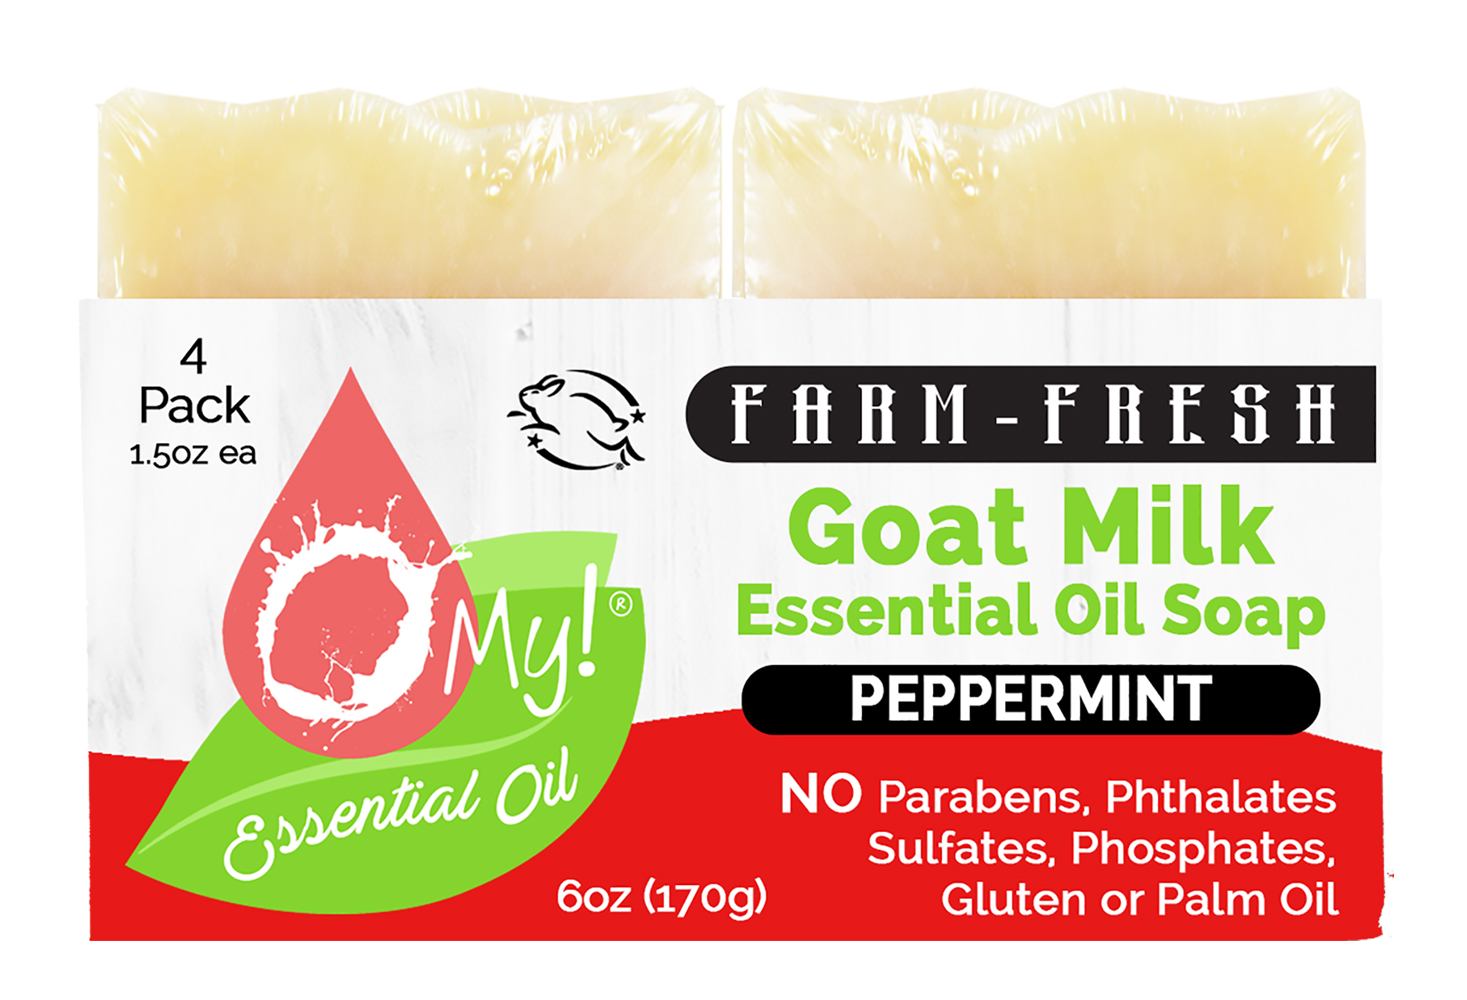 O My! Goat Milk Essential Oil Soap Traveler 4 Pack - Peppermint | Made with Farm-Fresh Goat Milk | Moisturizes dry skin | Leaping Bunny Certified | Handmade in USA